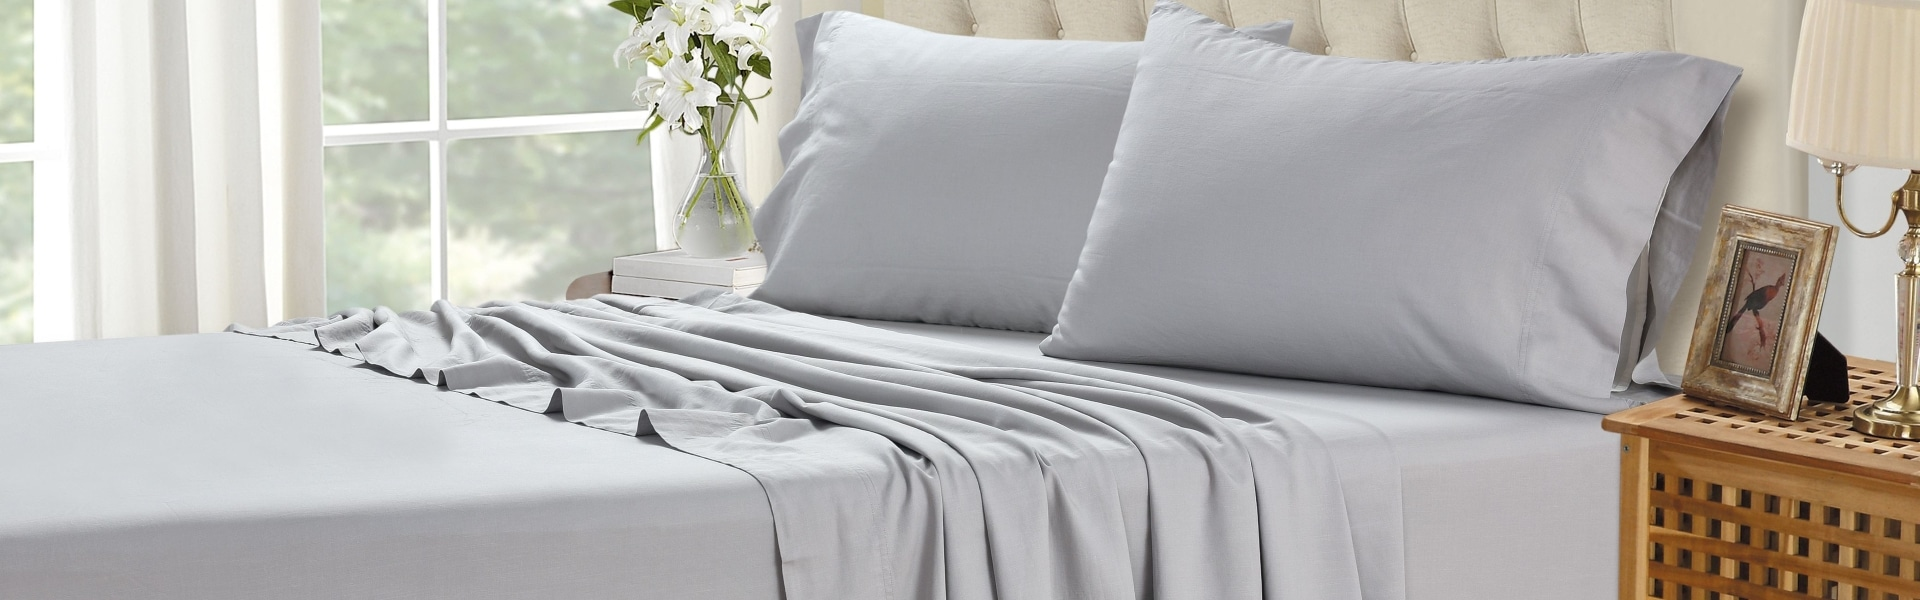 Best Sheets for Summer Reviewed in Detail